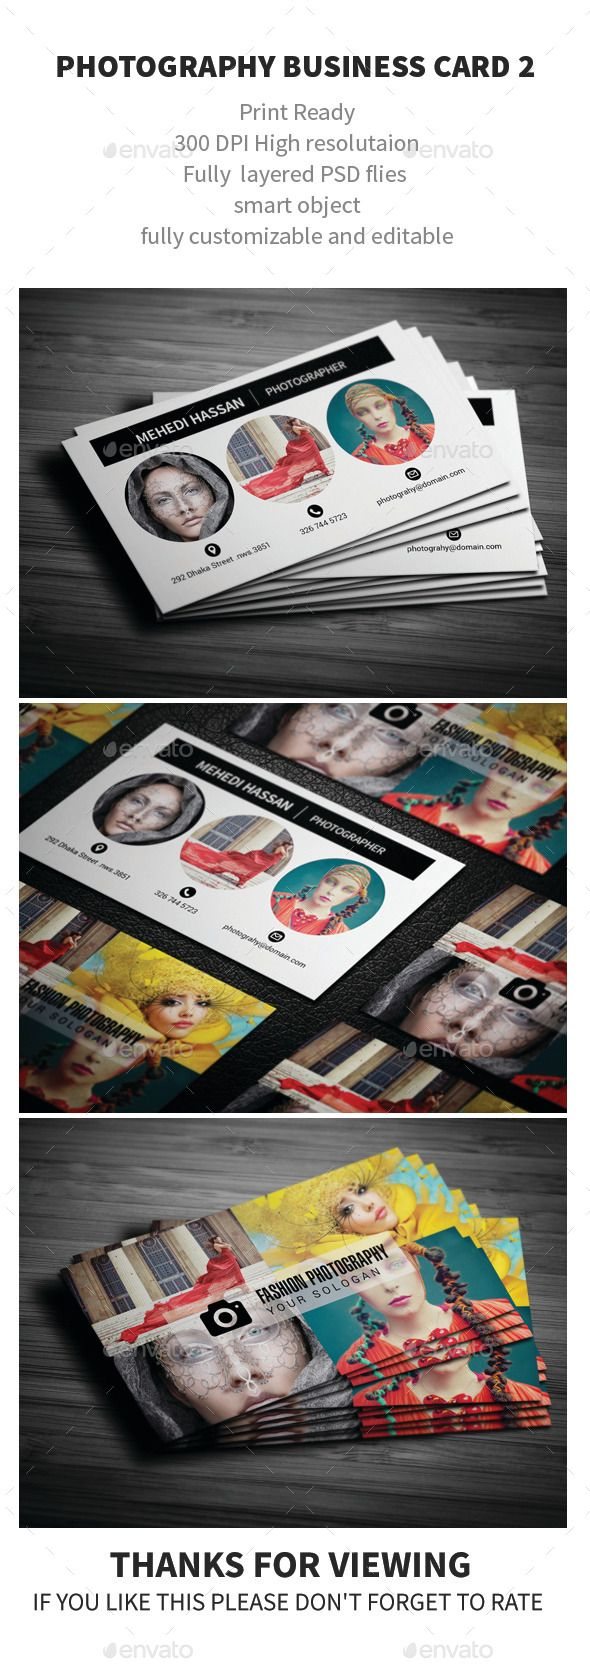 Fashion photography business card photography business cards fashion photography business card magicingreecefo Images